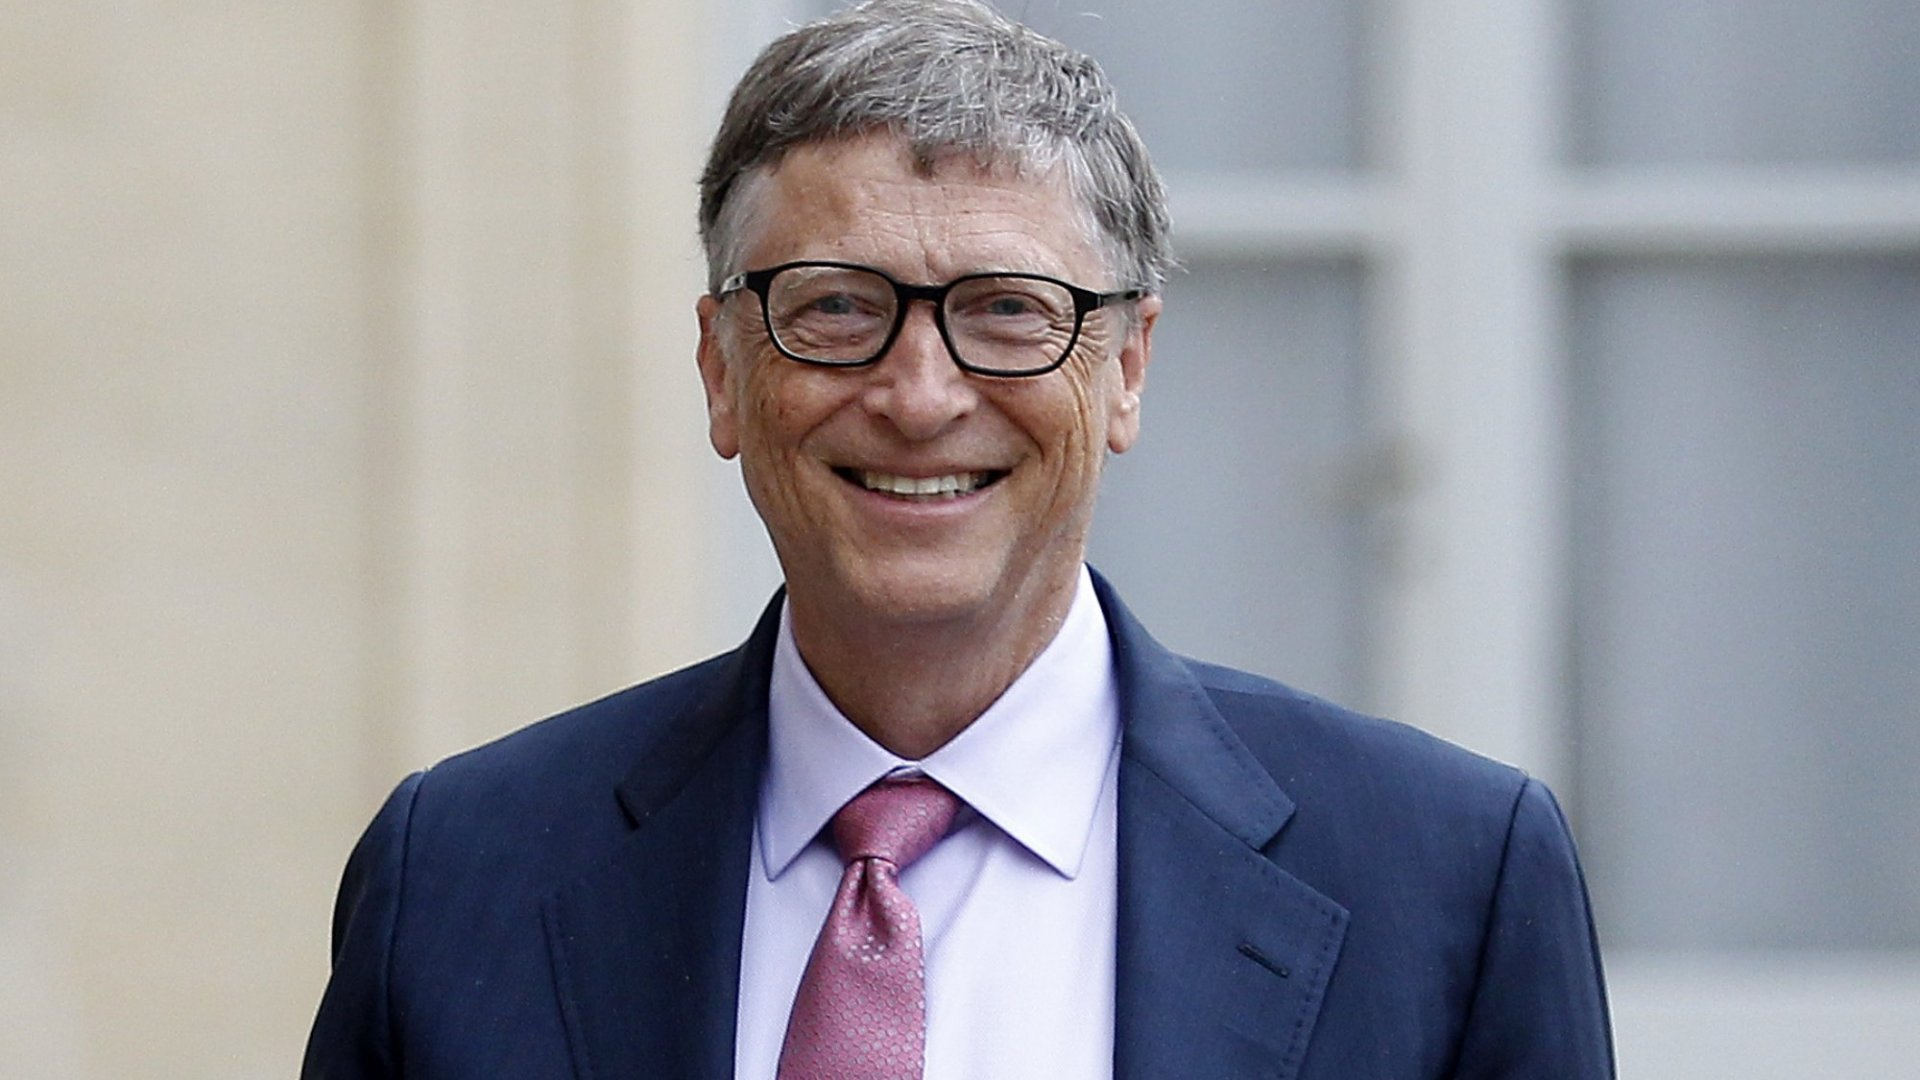 Bill Gates, the co-Founder of Microsoft and co-Founder of the Bill and Melinda Gates Foundation